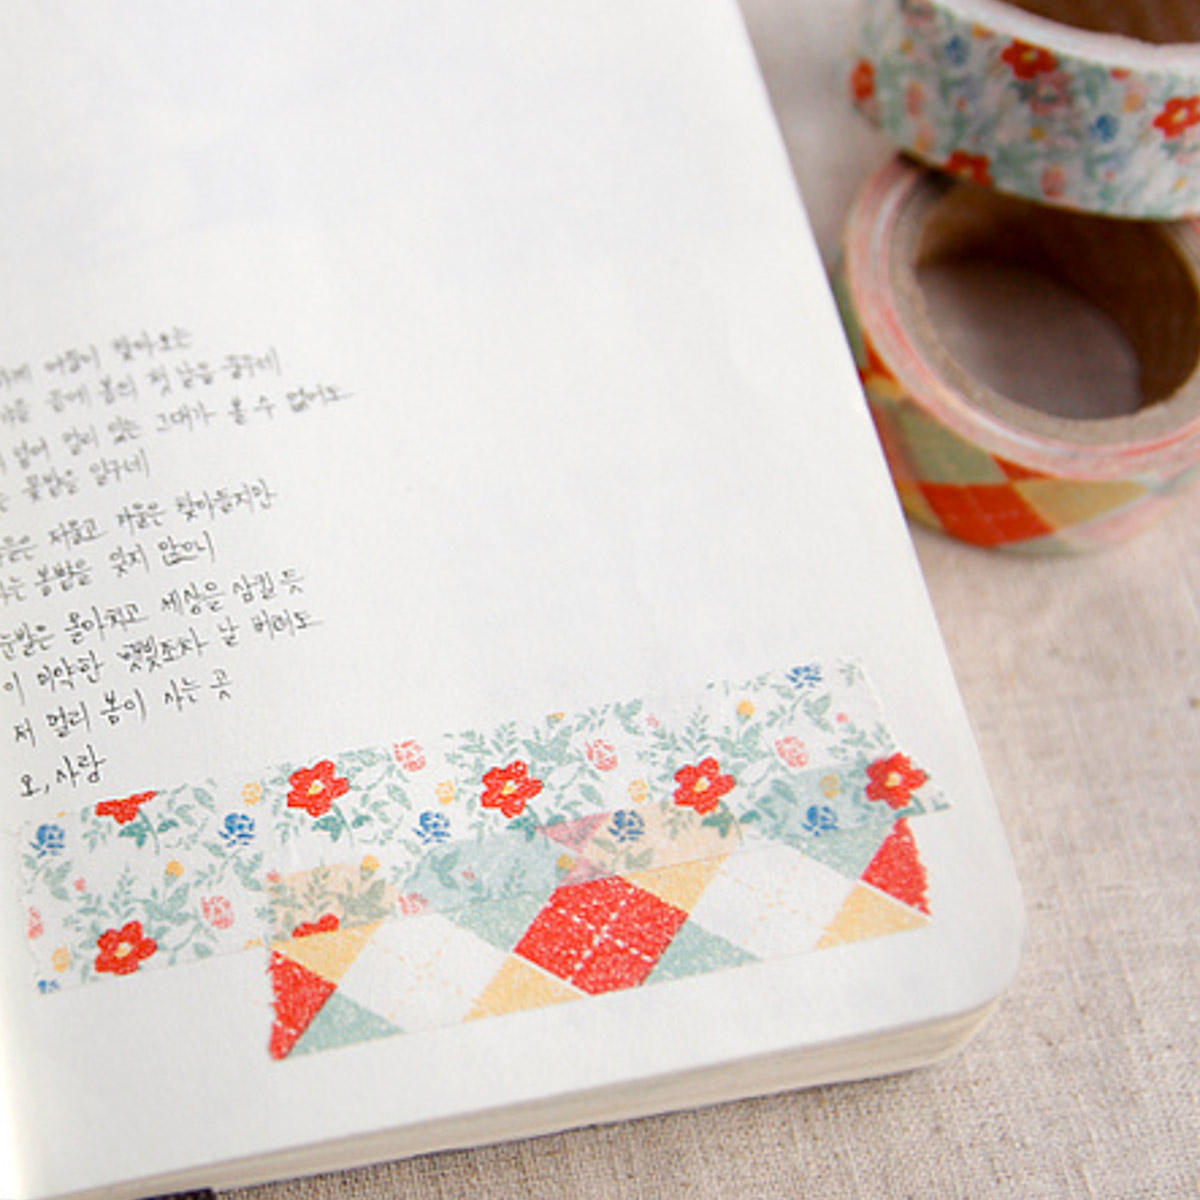 Washi tape rombos y flores de Iconic - Mr.Wonderful